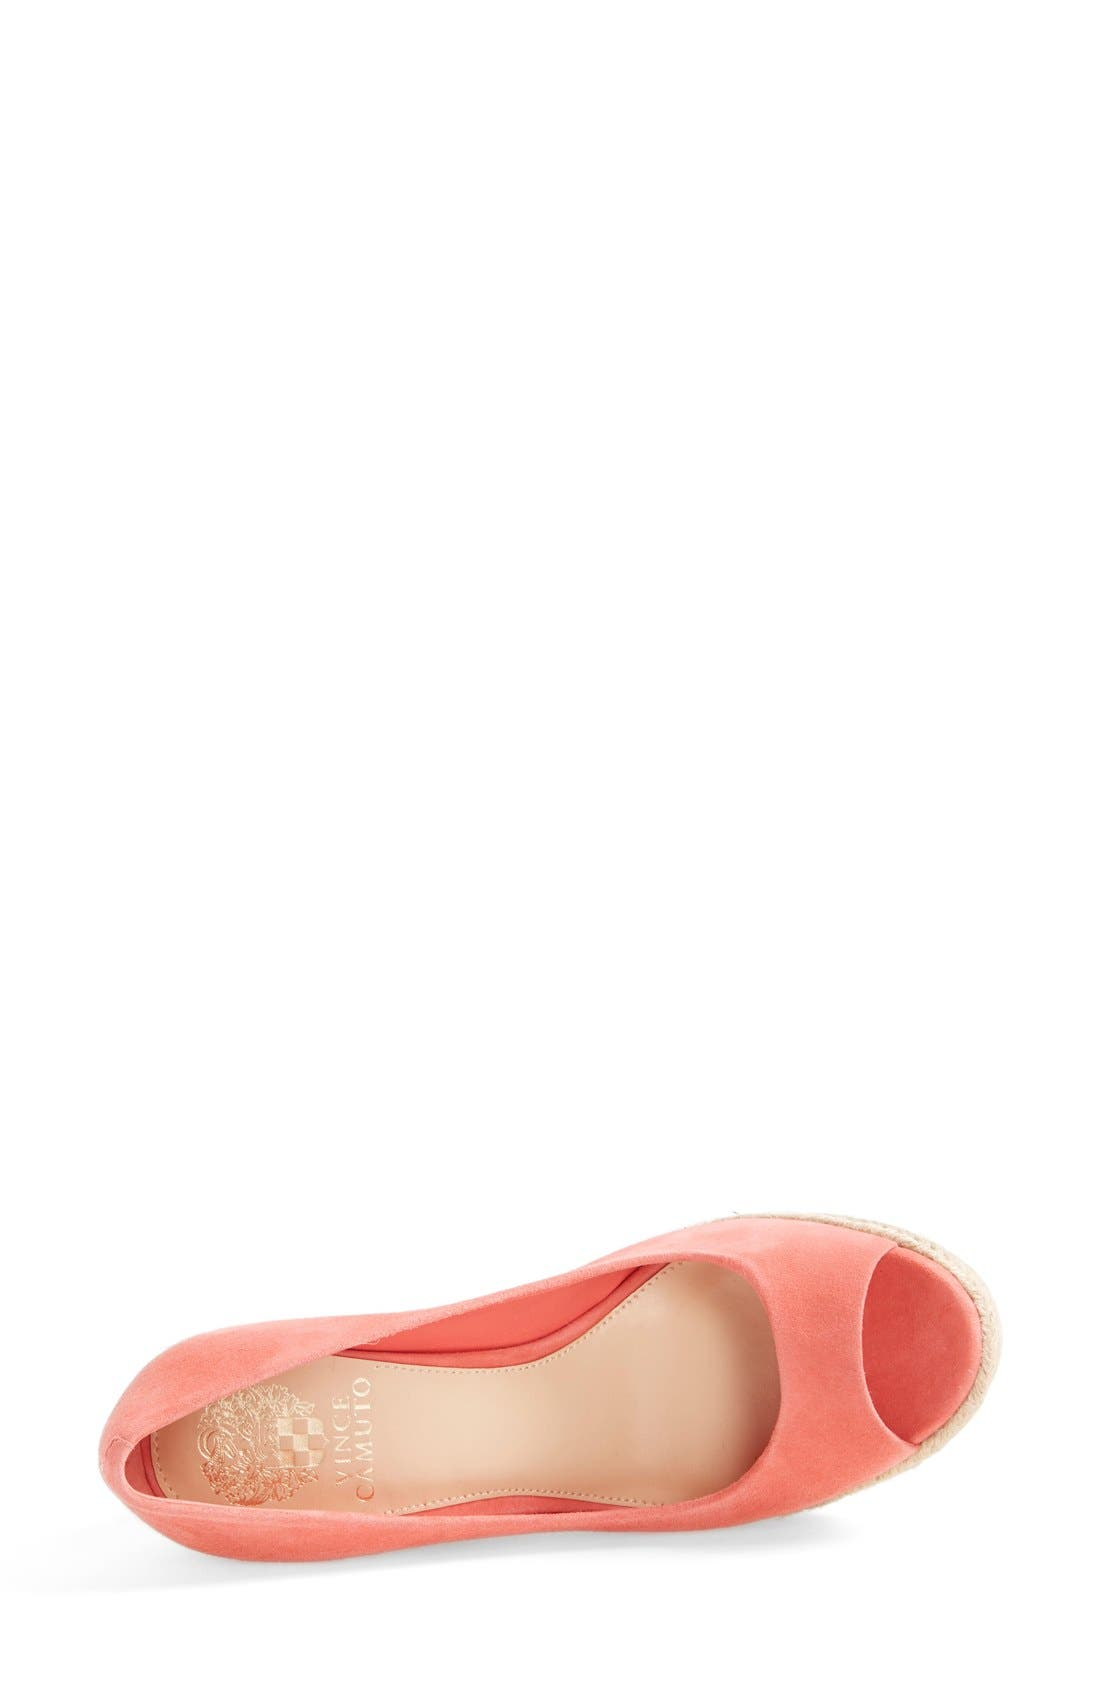 Alternate Image 3  - Vince Camuto 'Totsi' Peep Toe Espadrille Wedge (Women)